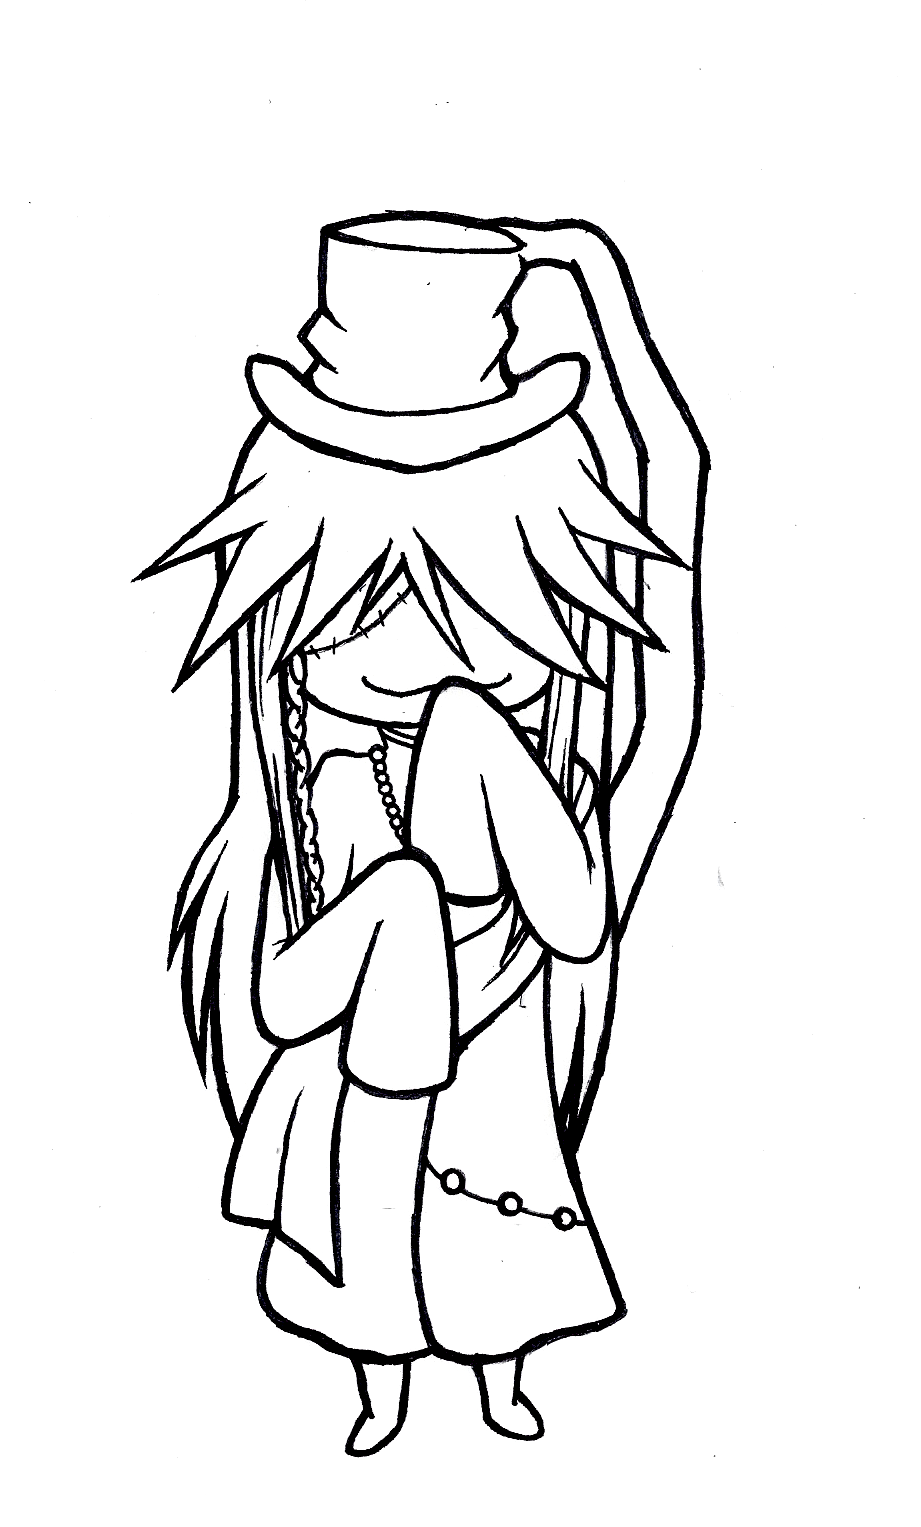 chibi undertaker lineart by saltyfruitato on deviantart